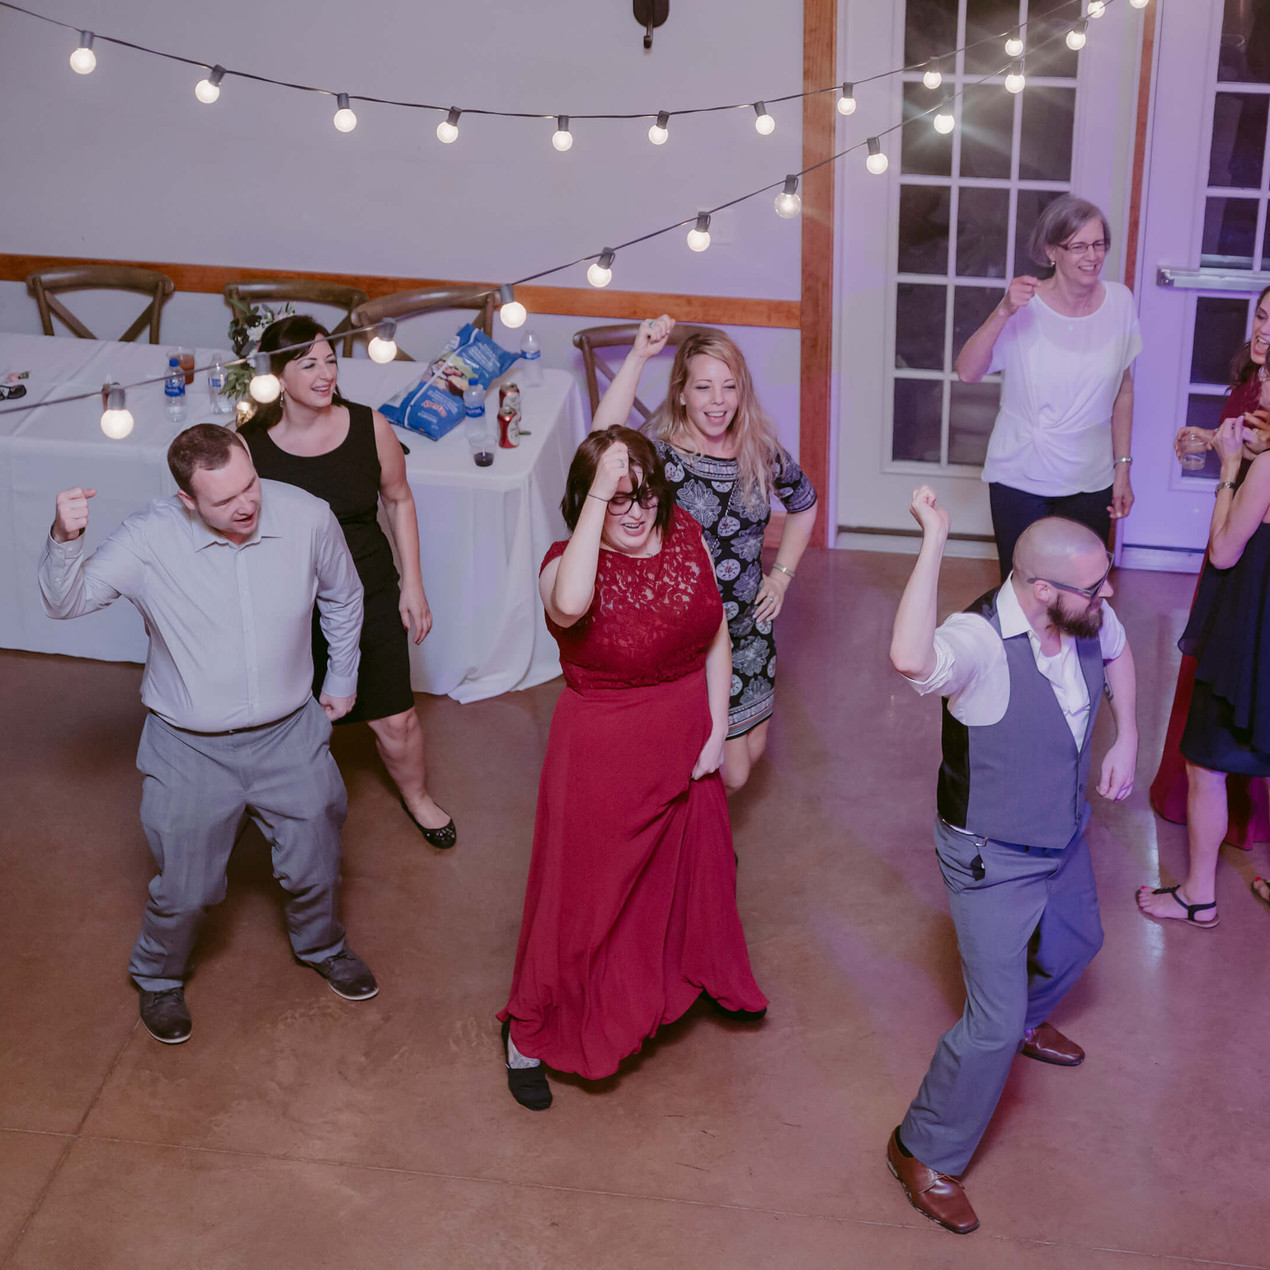 Wedding reception at the Marmalade Lily